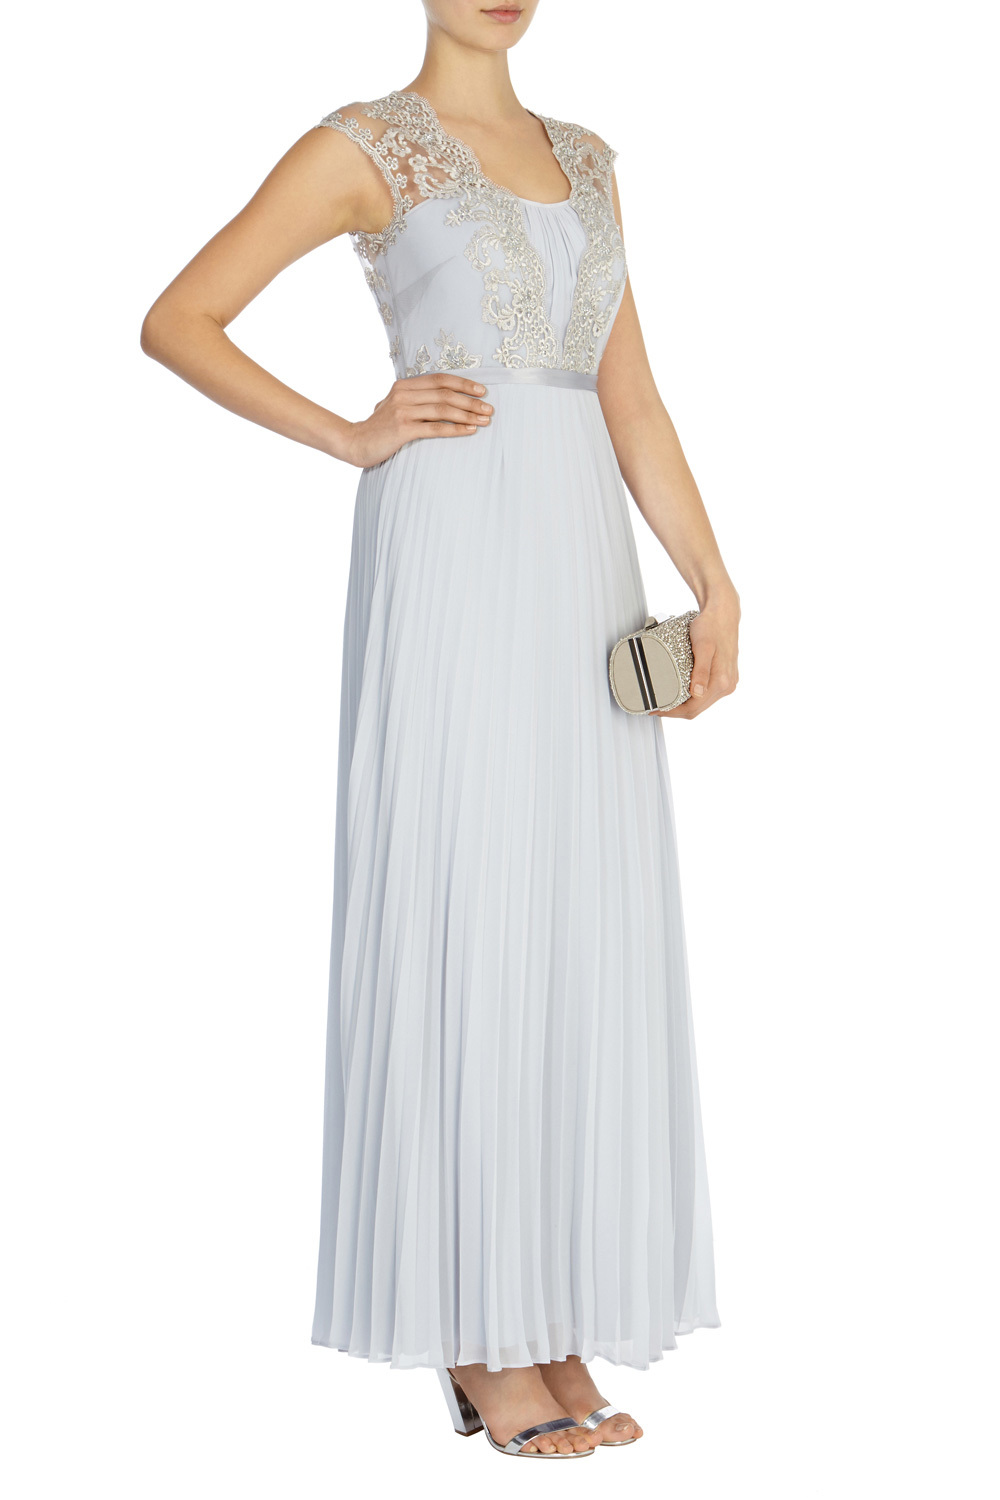 Lori Arlie Embellished Maxi - sleeve style: sleeveless; style: maxi dress; length: ankle length; predominant colour: pale blue; occasions: evening, occasion; fit: fitted at waist & bust; neckline: scoop; fibres: polyester/polyamide - 100%; hip detail: soft pleats at hip/draping at hip/flared at hip; bust detail: contrast pattern/fabric/detail at bust; sleeve length: sleeveless; texture group: sheer fabrics/chiffon/organza etc.; pattern type: fabric; pattern size: standard; pattern: patterned/print; embellishment: lace; season: s/s 2016